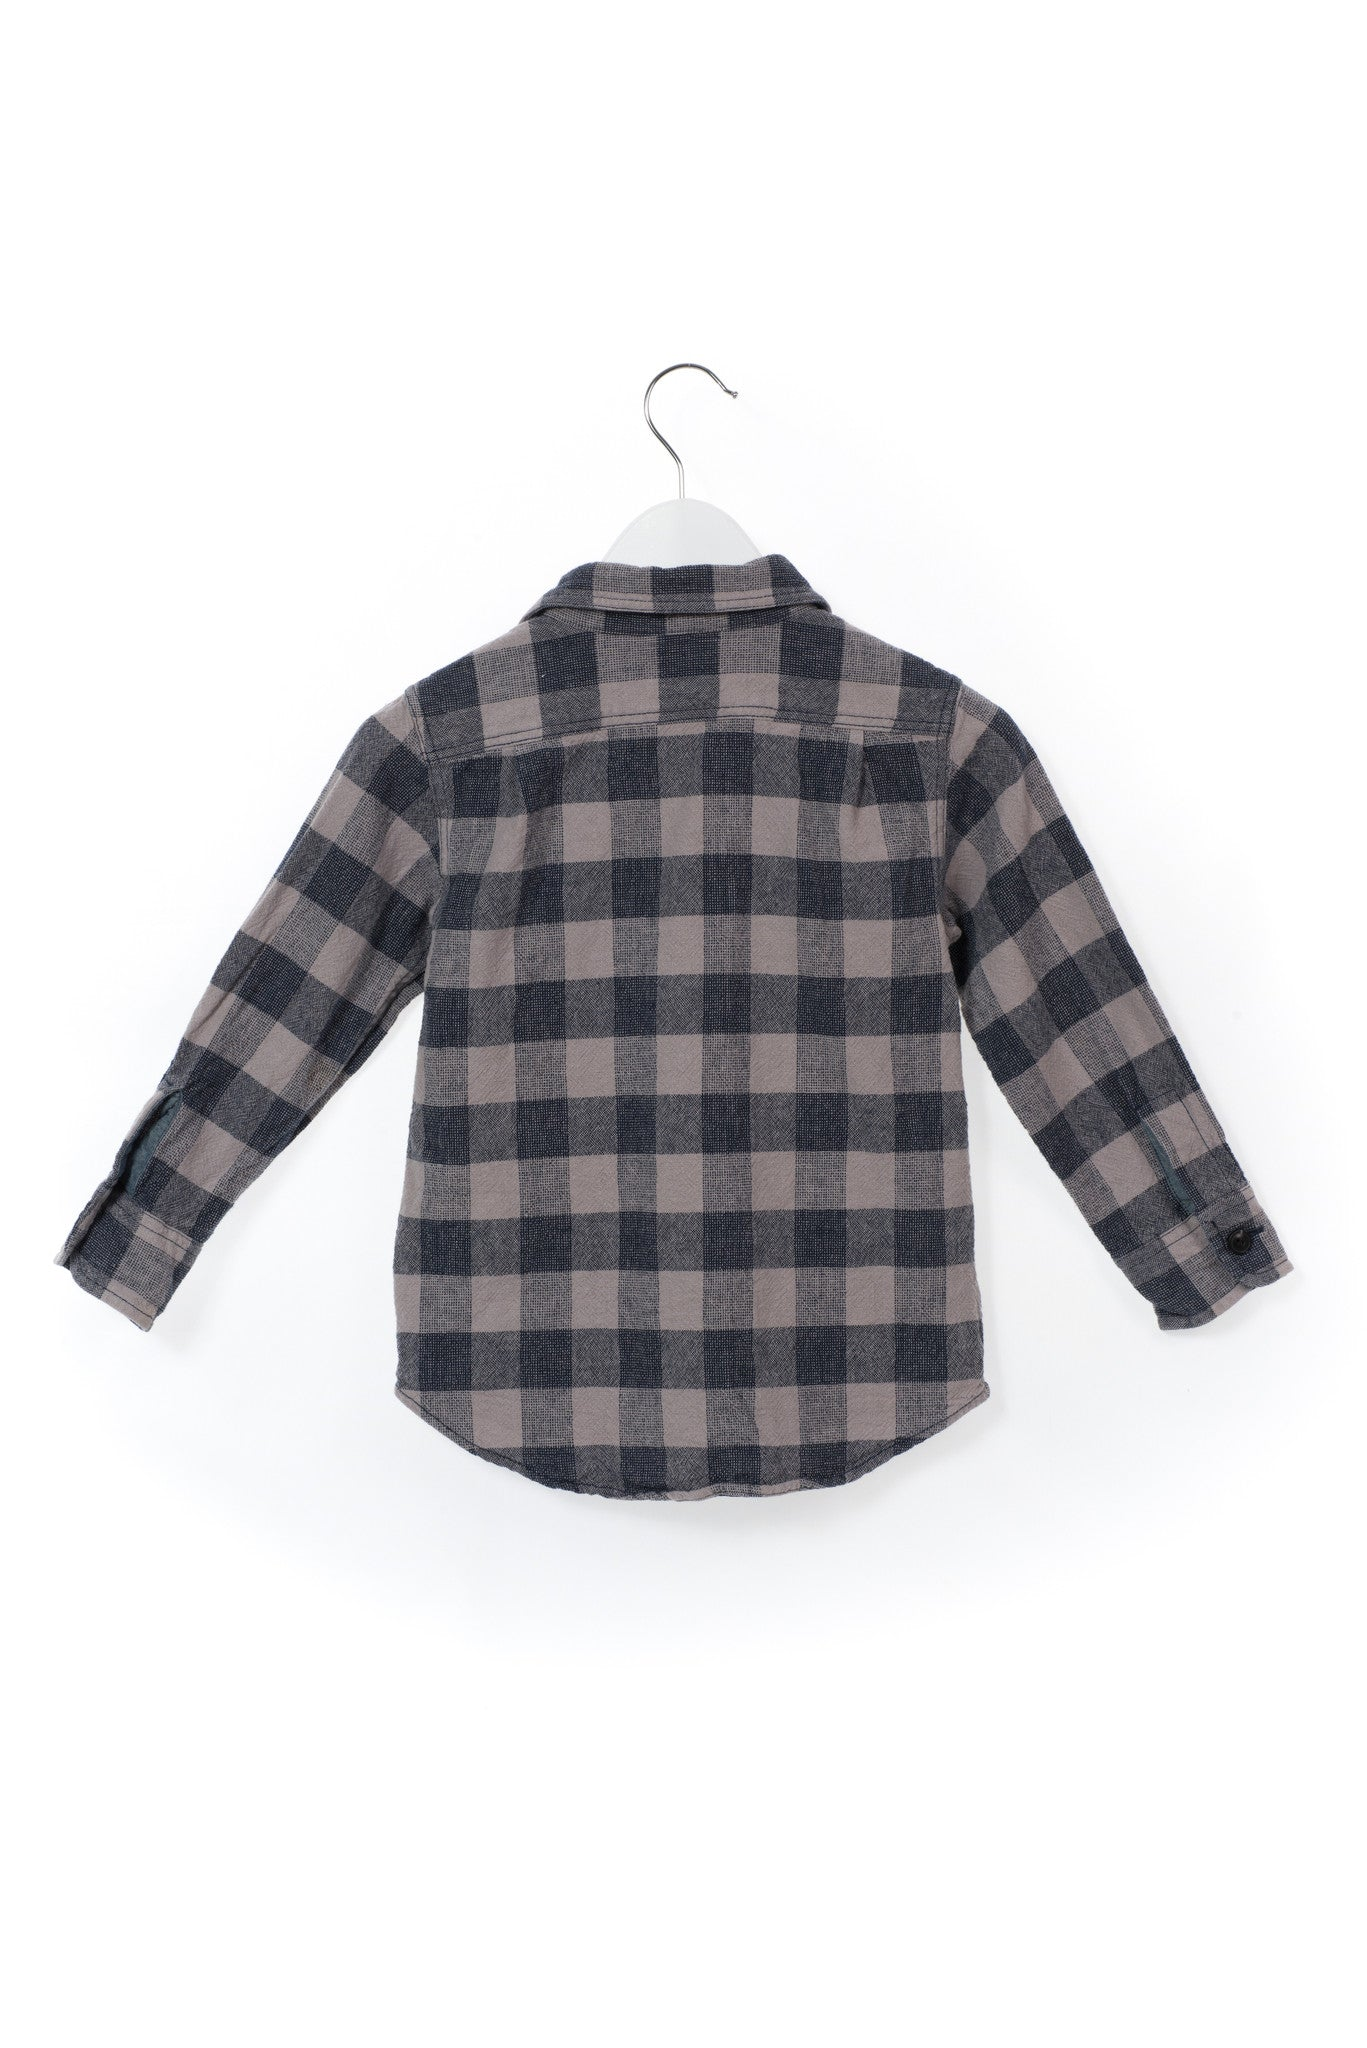 10001113 Crewcuts Kids~Shirt 3T at Retykle